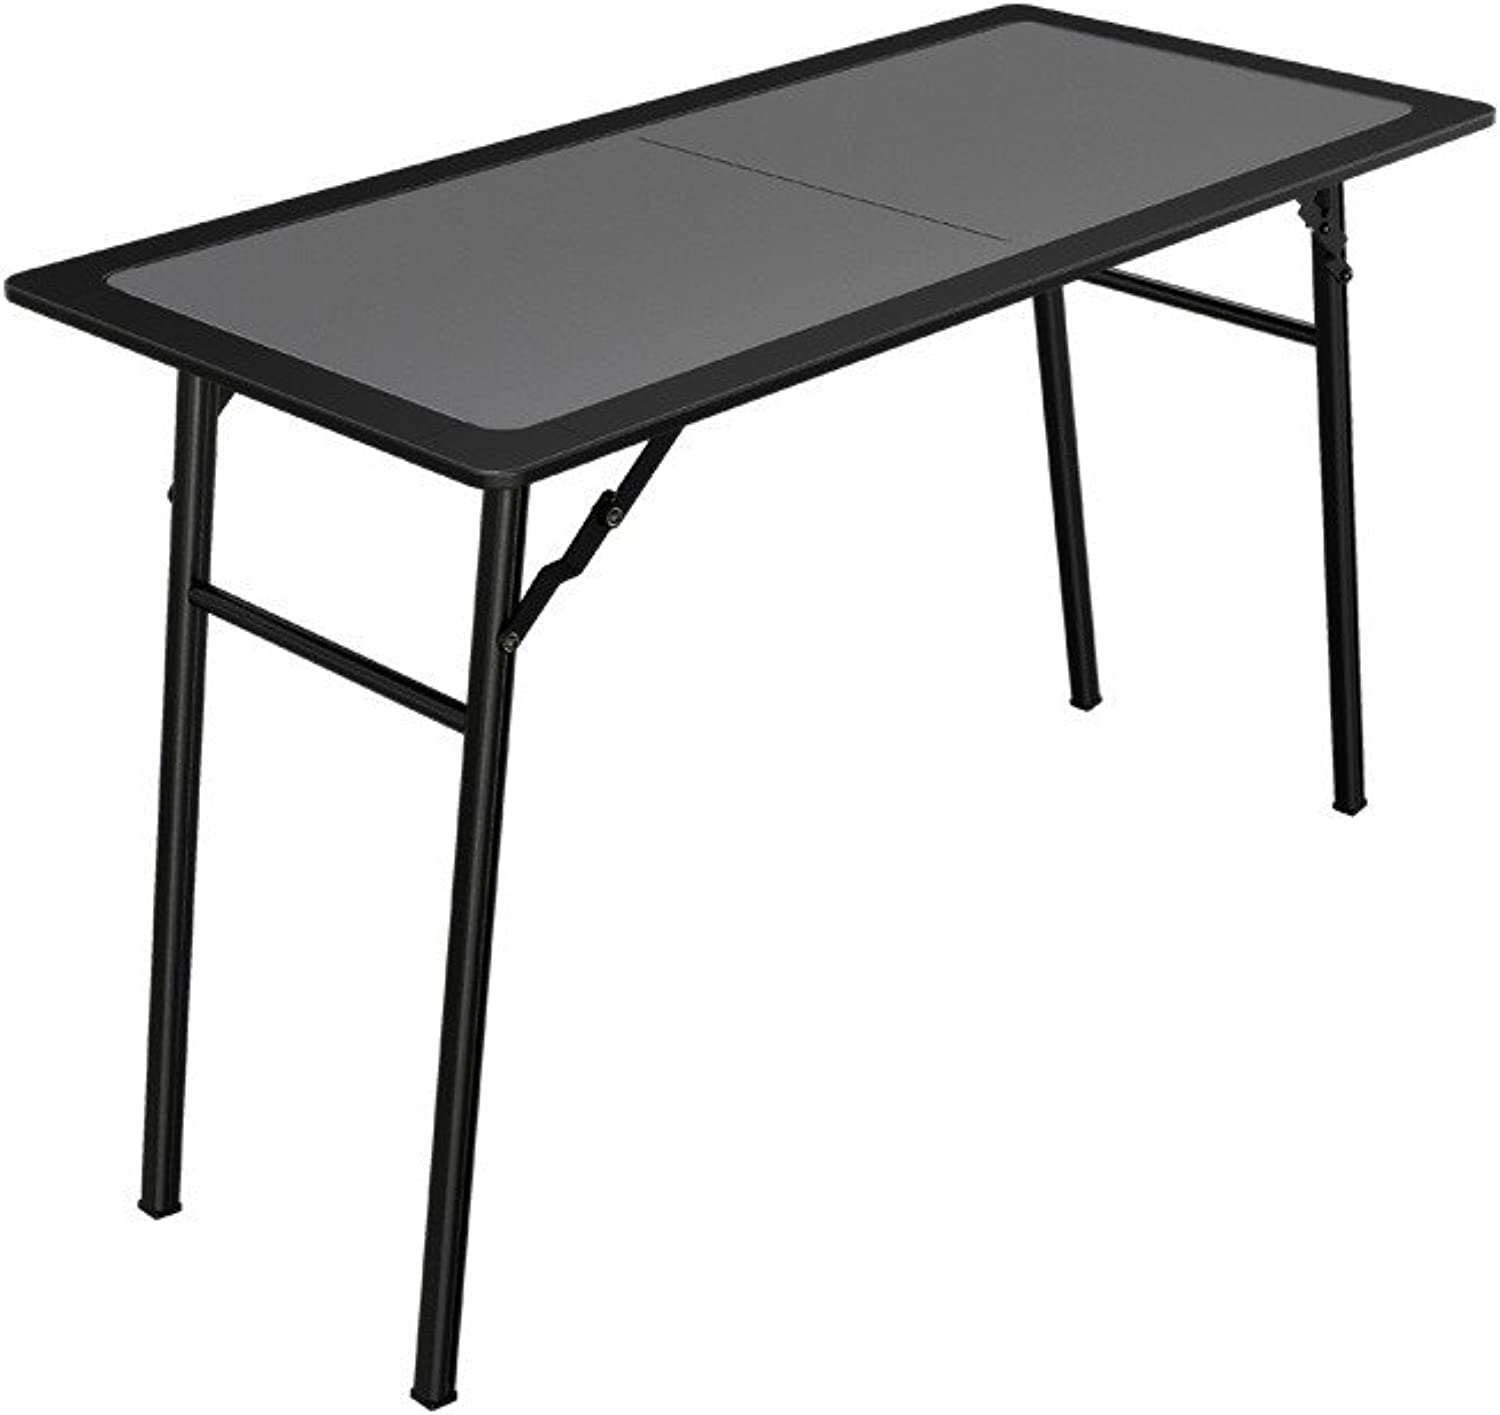 Pro Stainless Steel Prep Table  by Front Runner